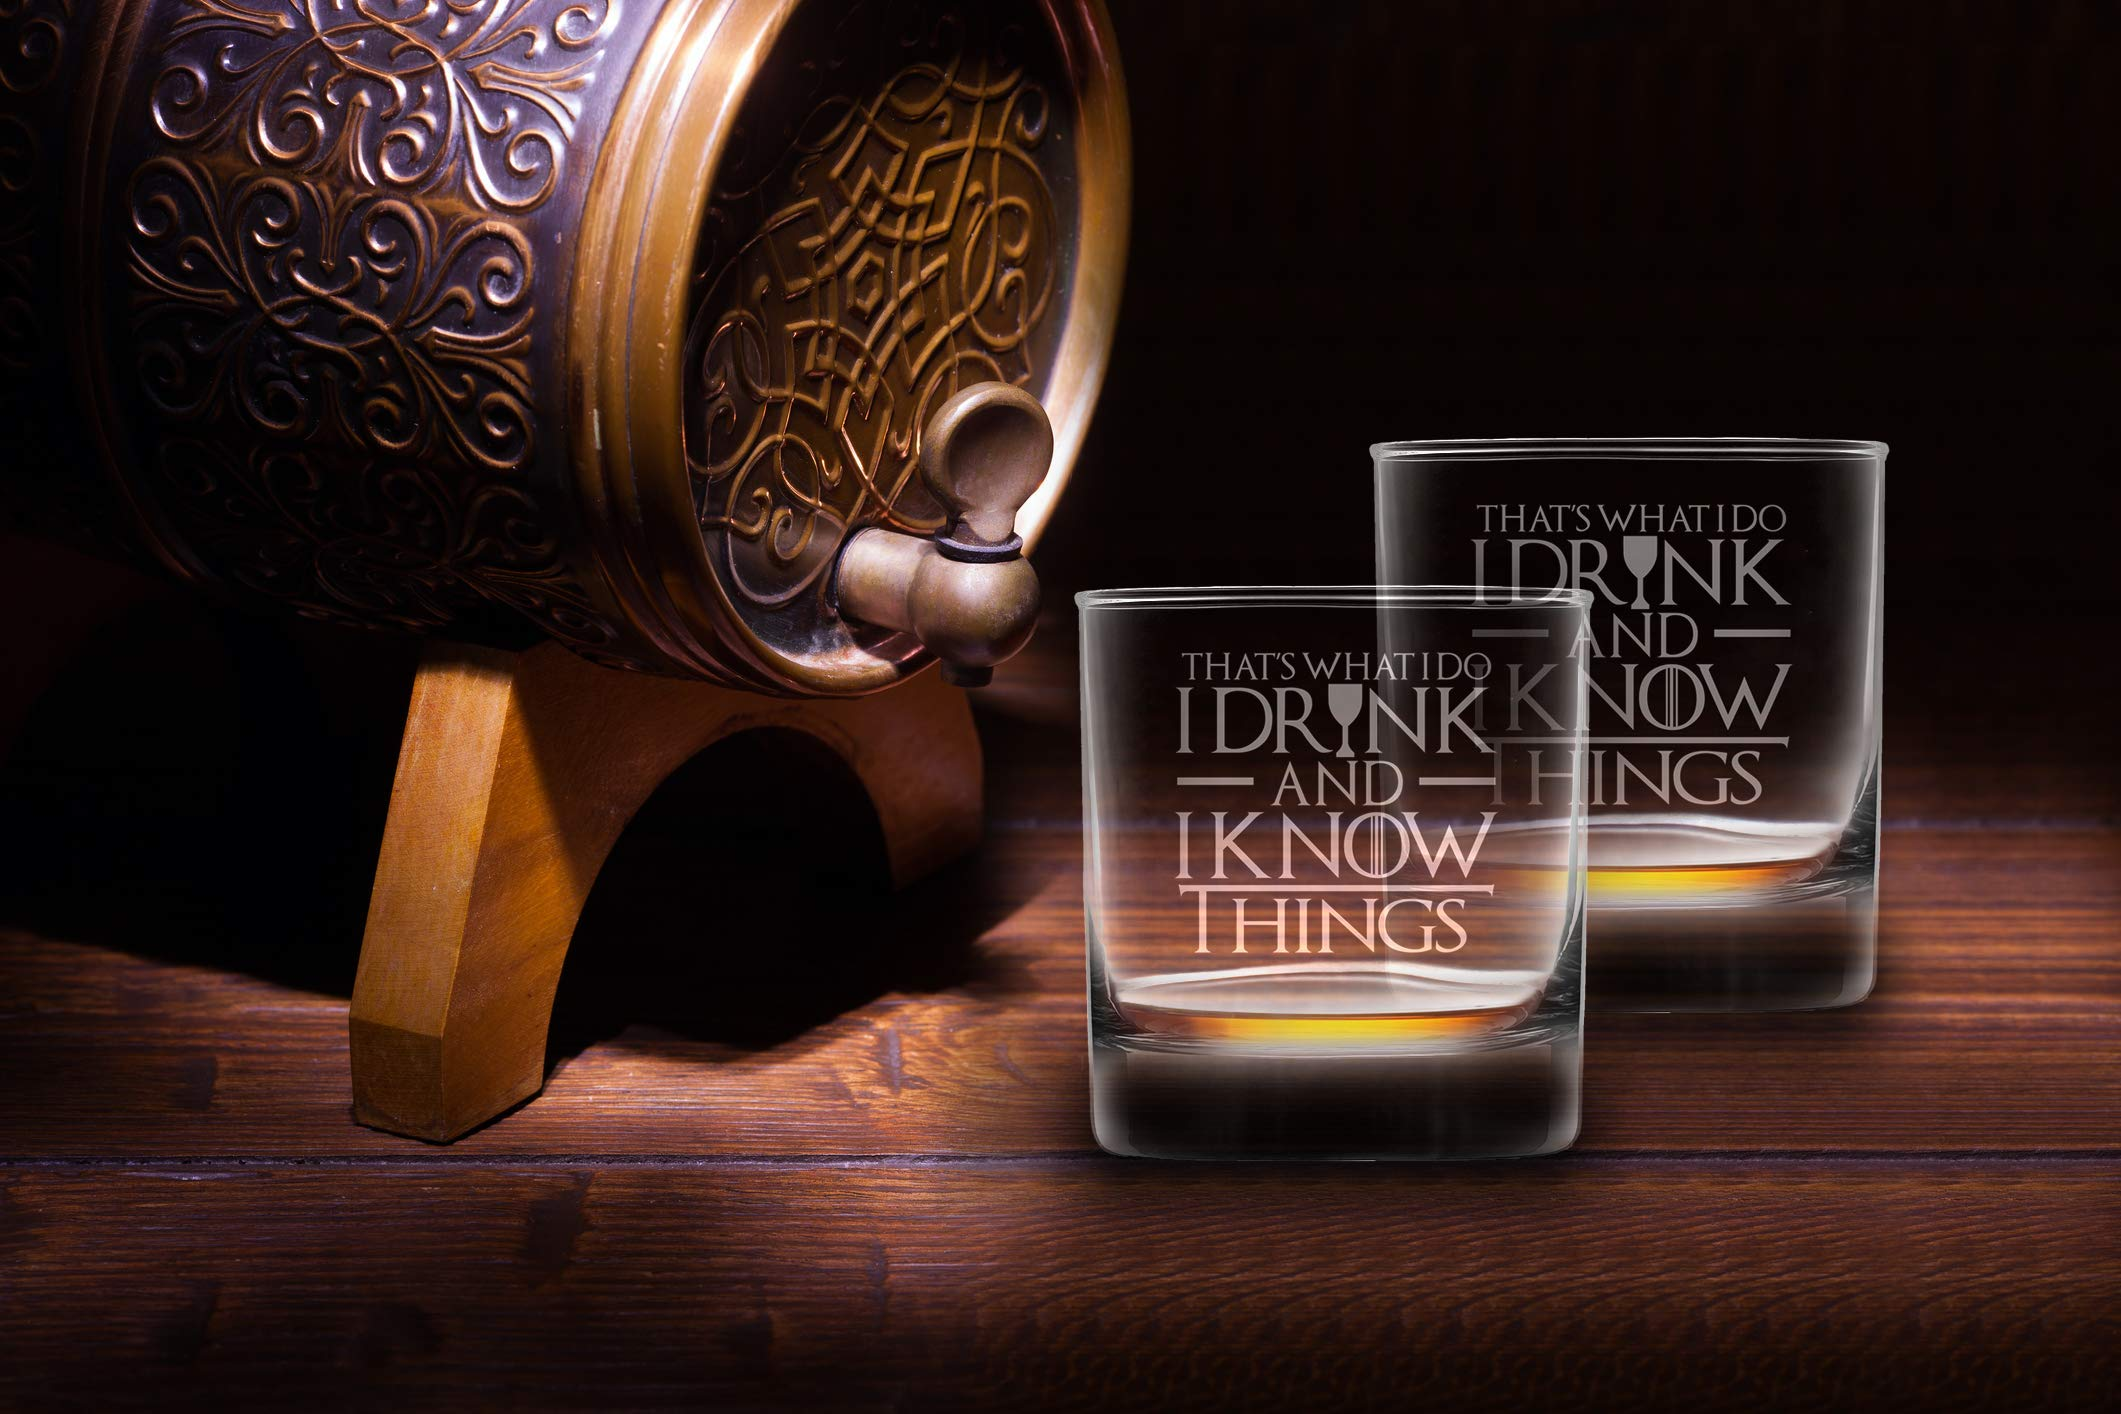 I Drink And I Know Things Highball Whiskey Glasses - Set of 2 - by FOLE (Image #3)